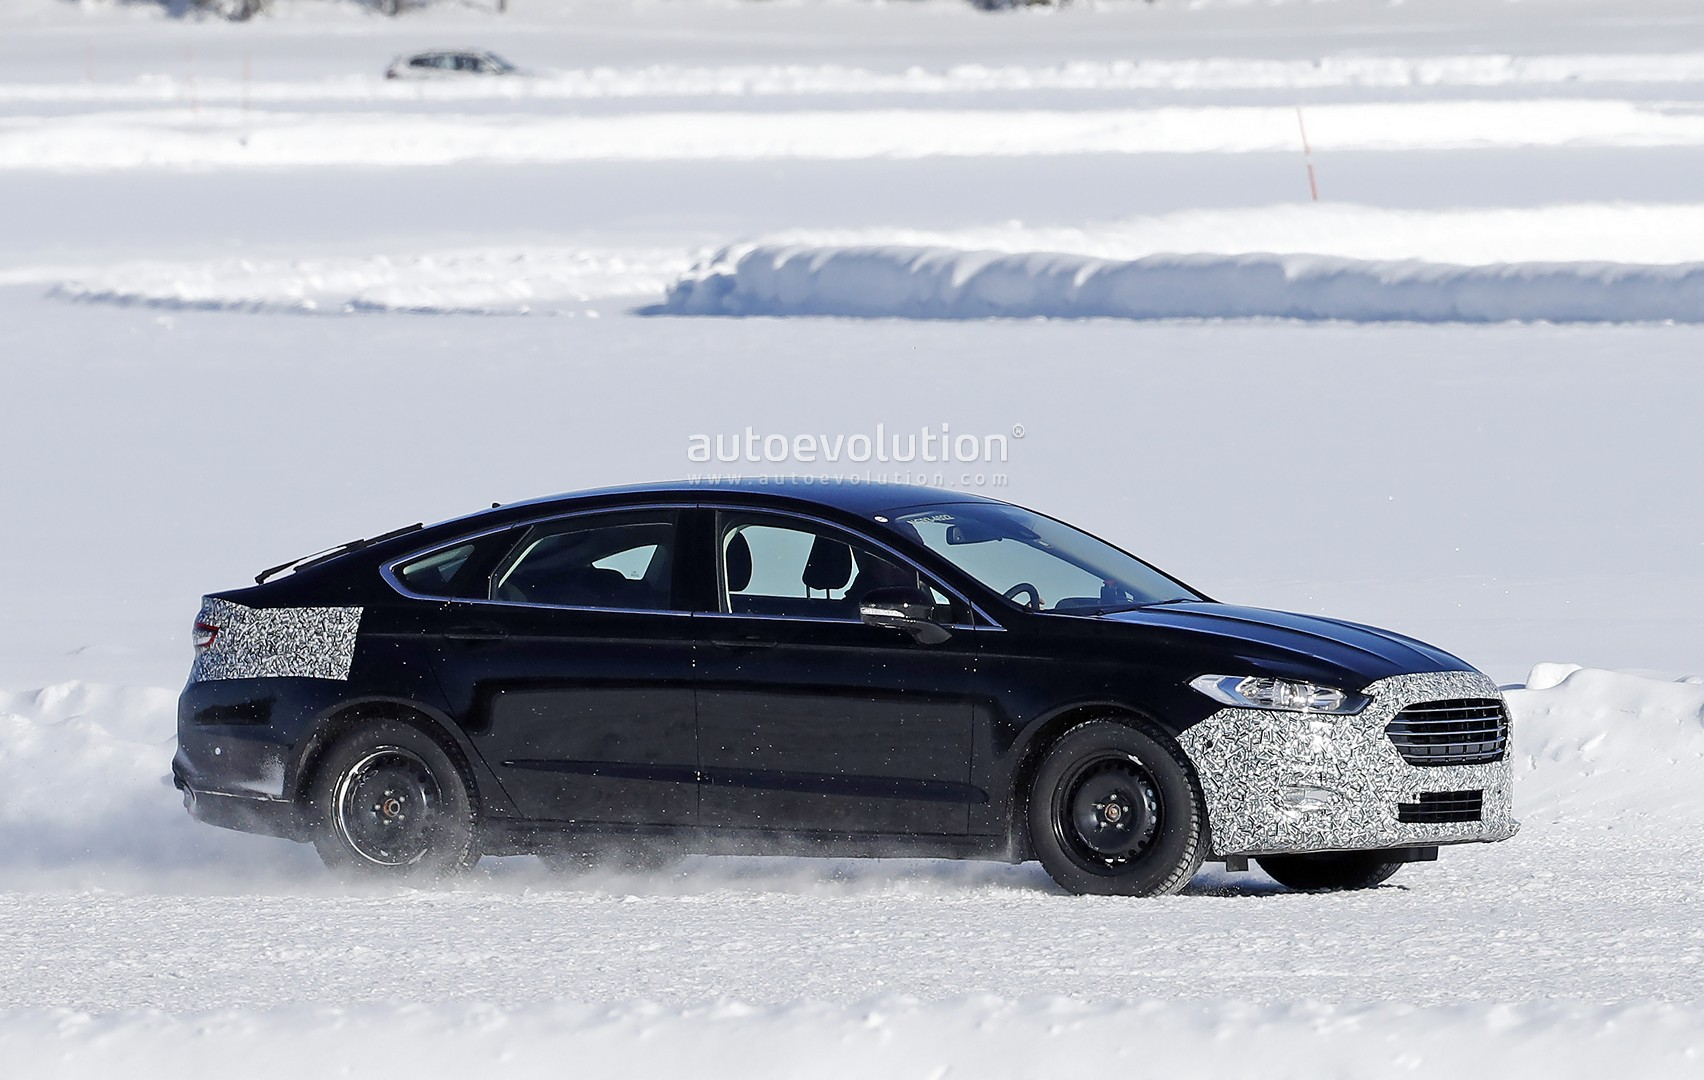 2019 Ford Mondeo Facelift Spied for the First Time in Sweden - autoevolution